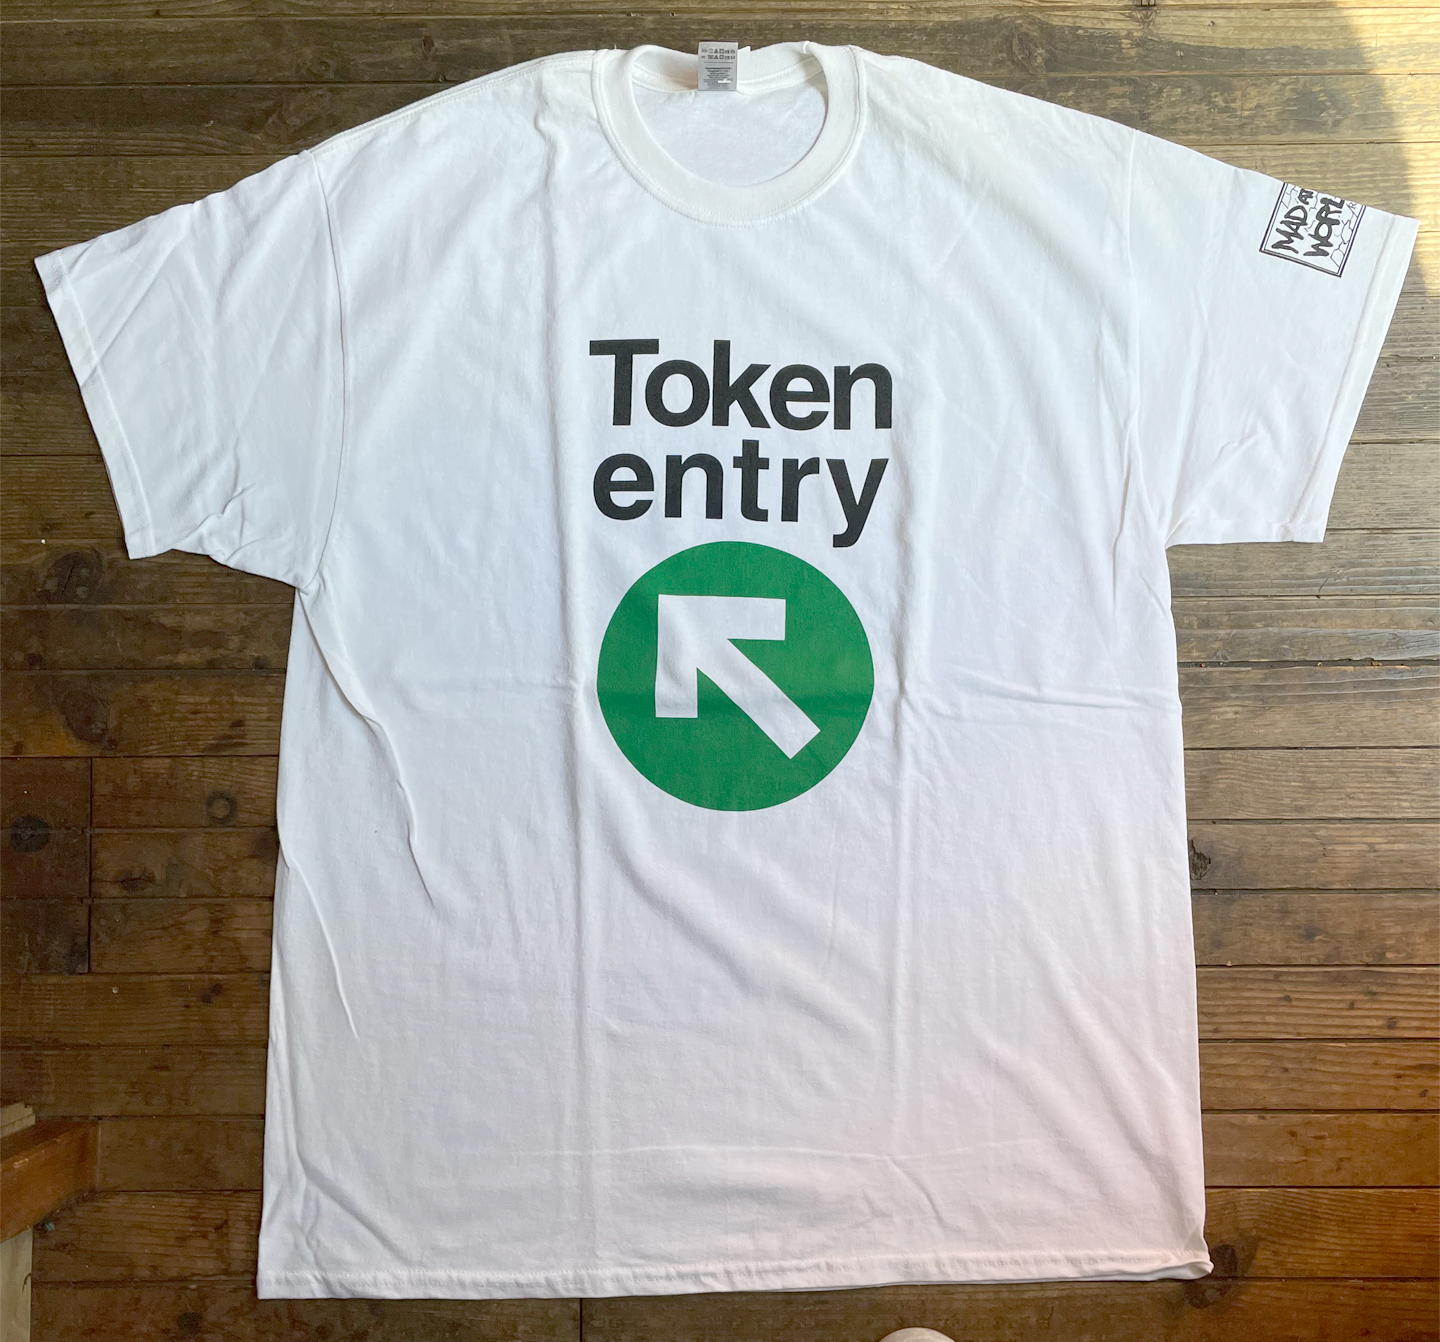 TOKEN ENTRY Tシャツ 矢印 OFFICIAL!